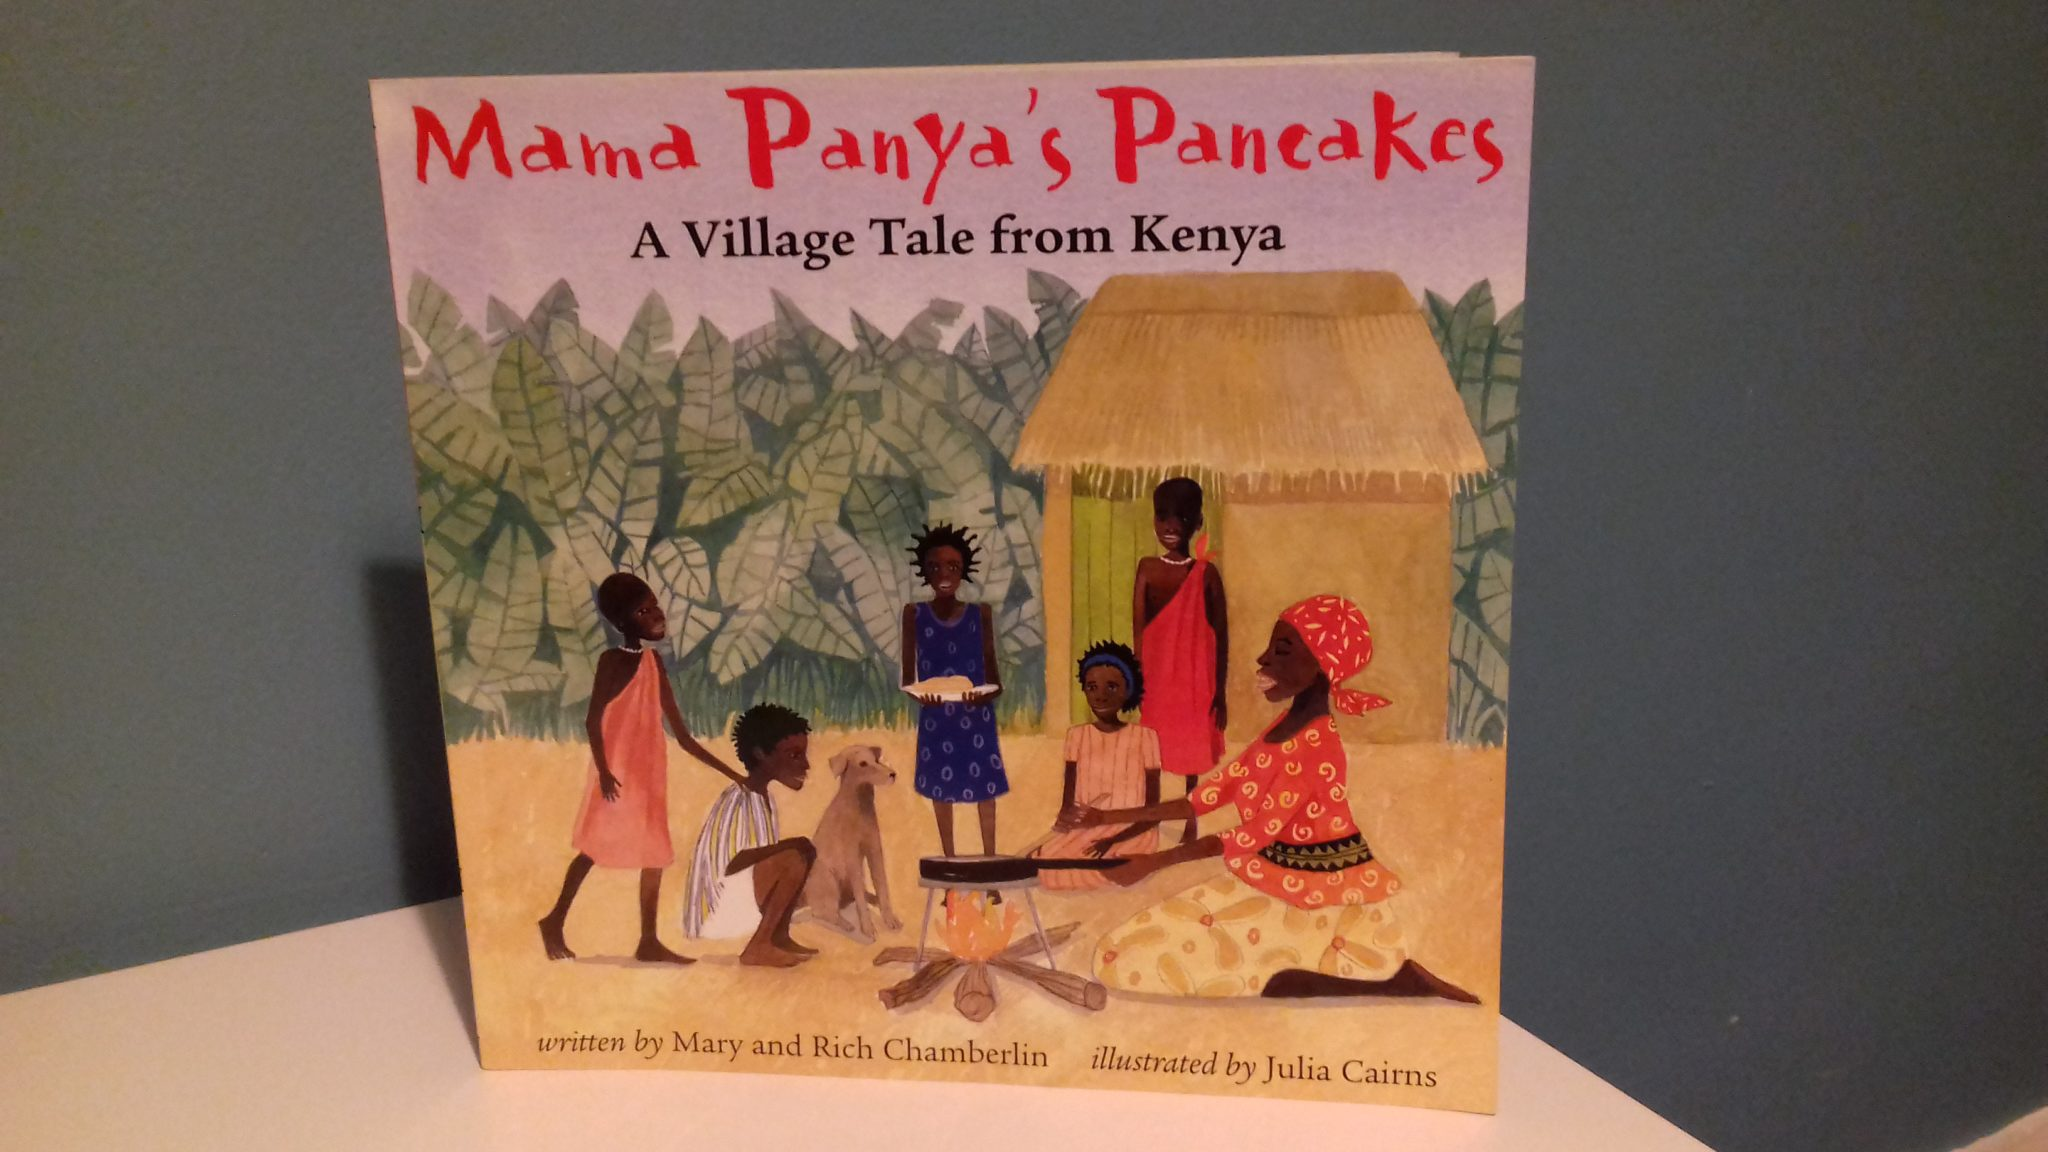 Mama Panya's Pancakes - Looking for multicultural books for your children? This list features 25+ of the best diversity books about race and culture for the kids in your family or your classroom.